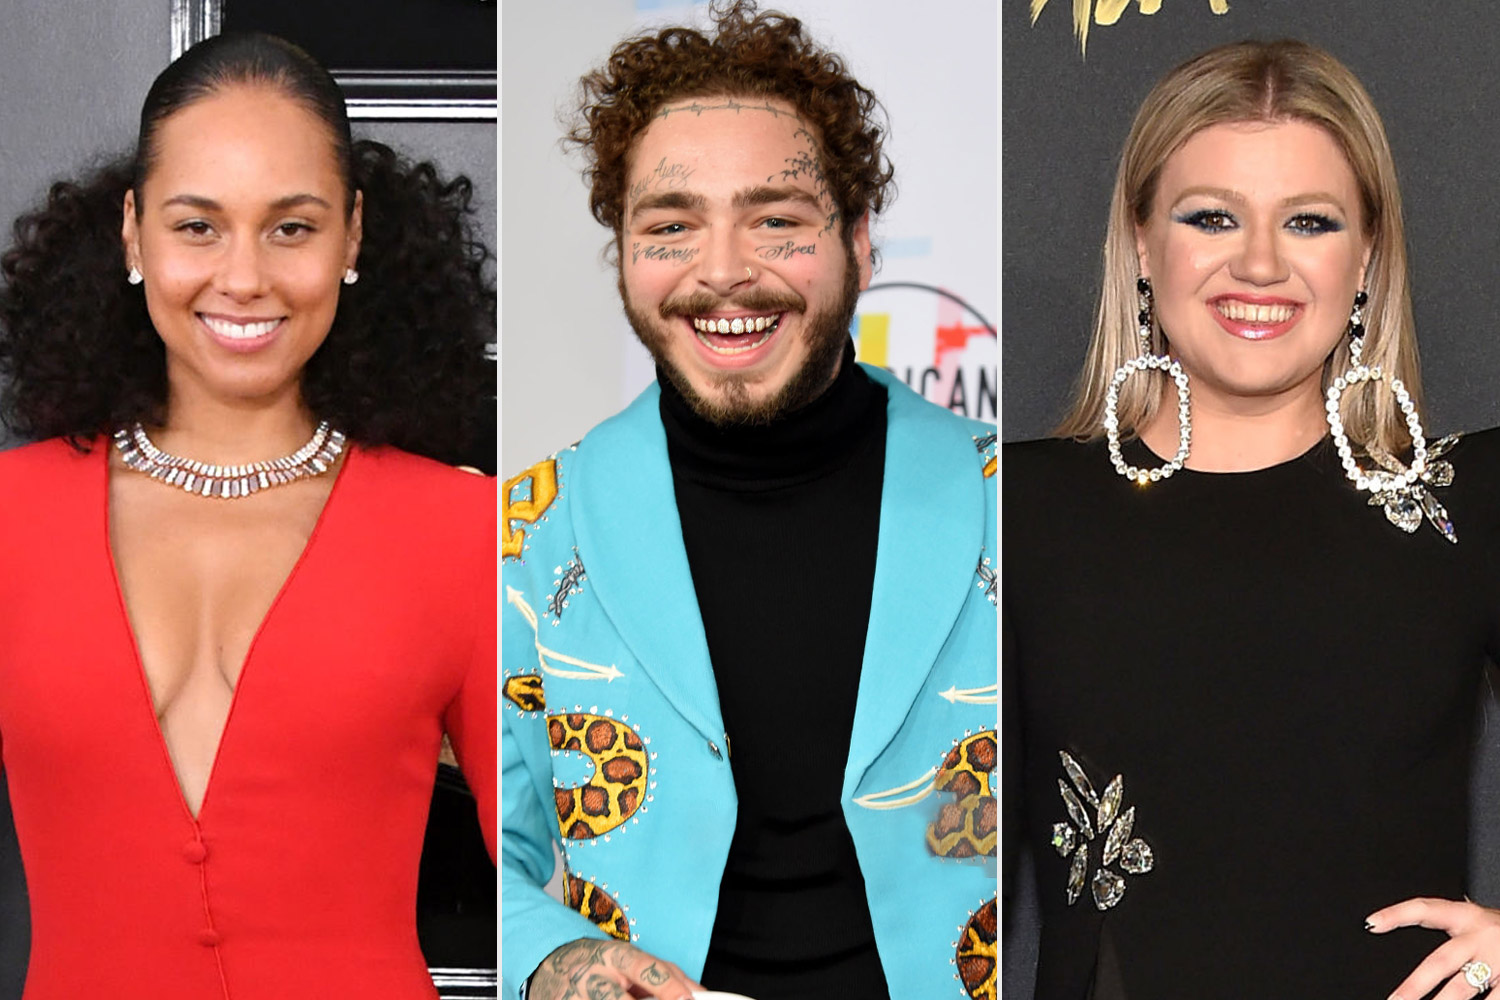 Alicia Keys, Post Malone and Kelly Clarkson